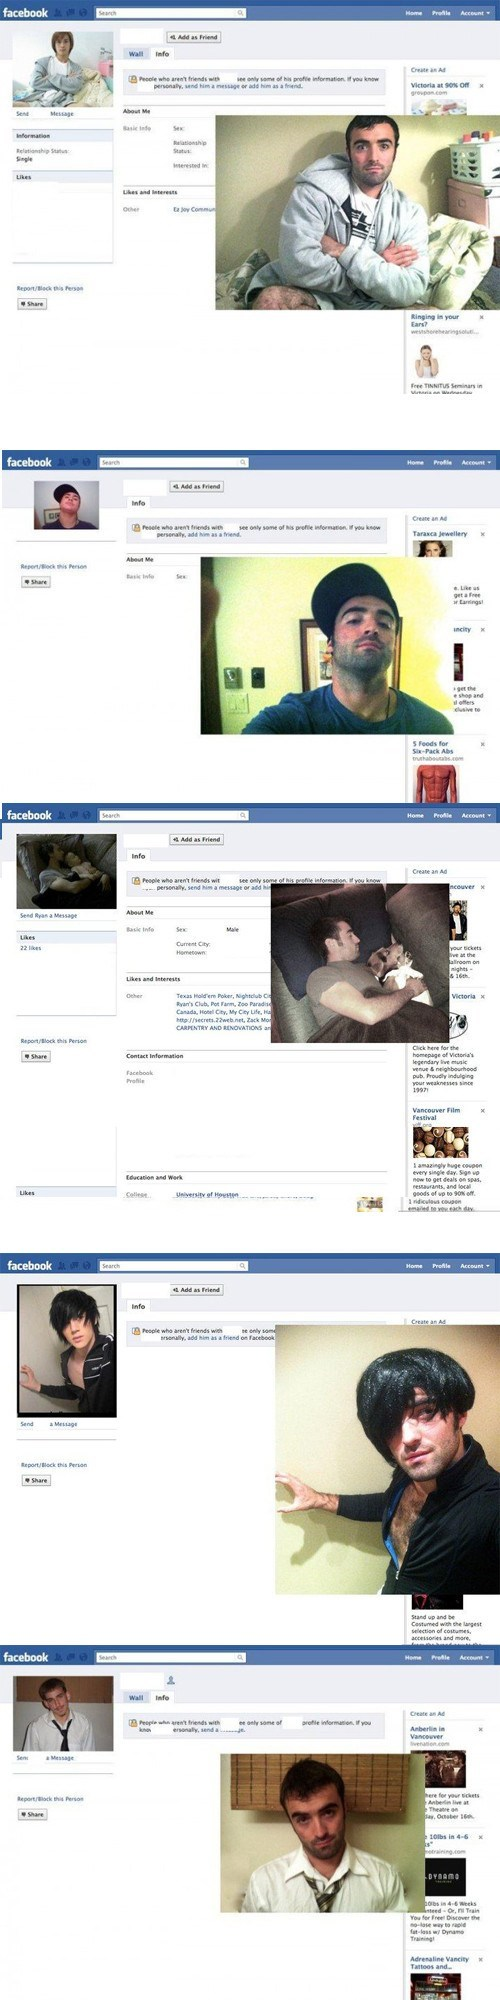 same profile picture,stalker,creeper,facebook creeper,friend request,facebook stalker,profile picture,Hall of Fame,best of week